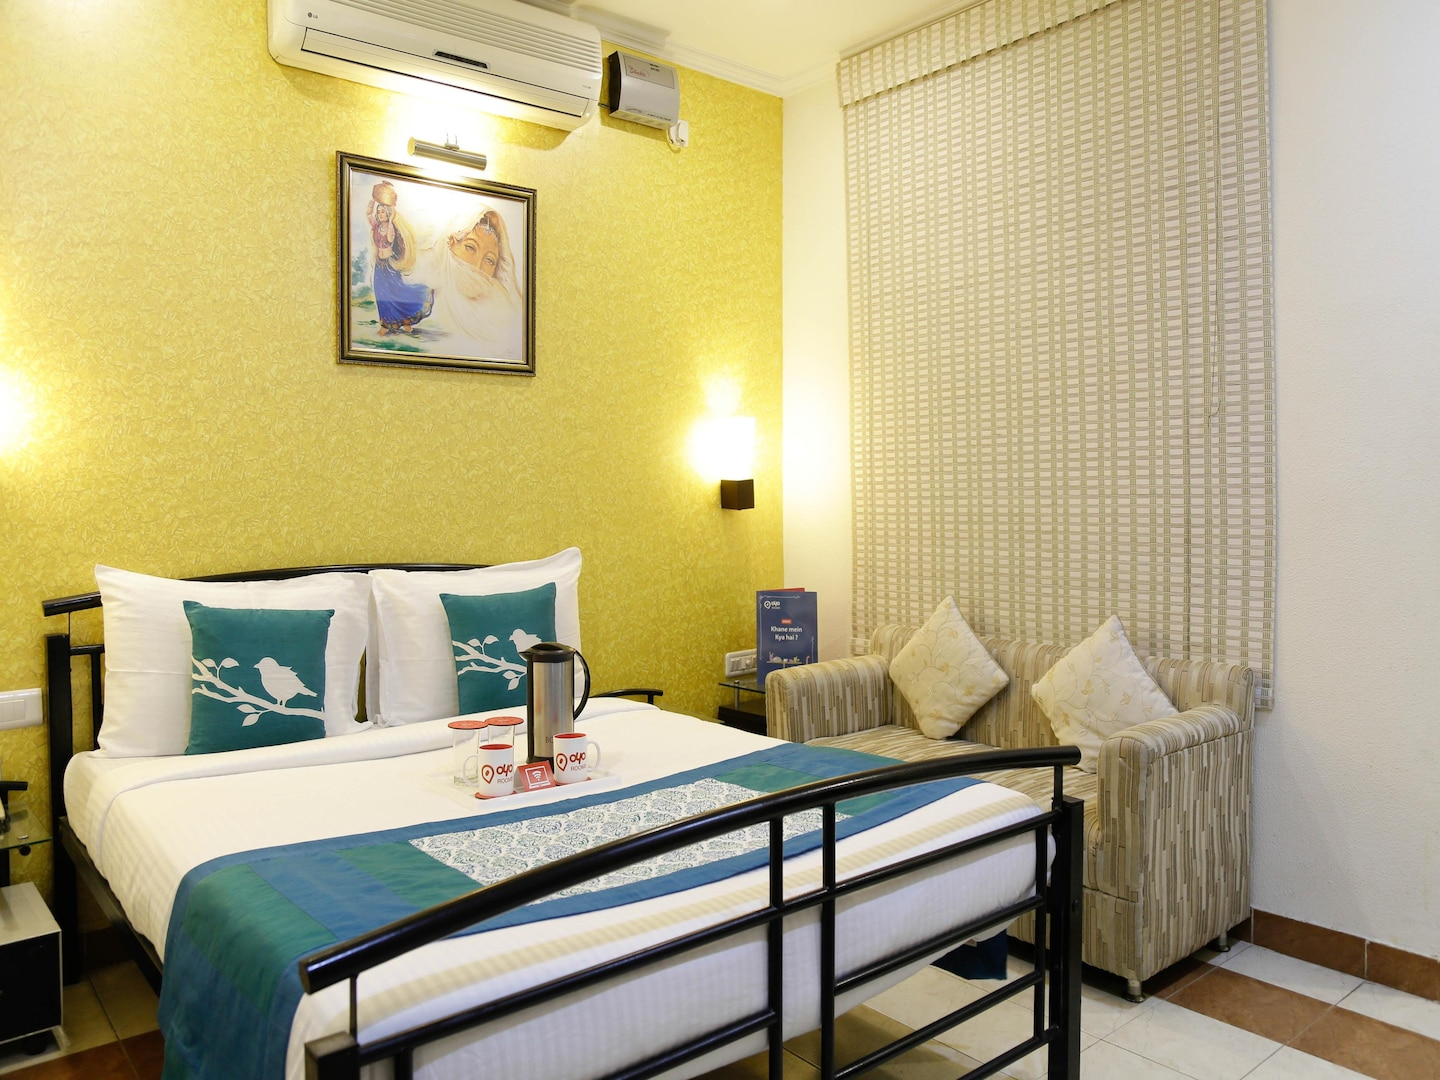 OYO 2730 Hotel Ethnic Residency Room-1